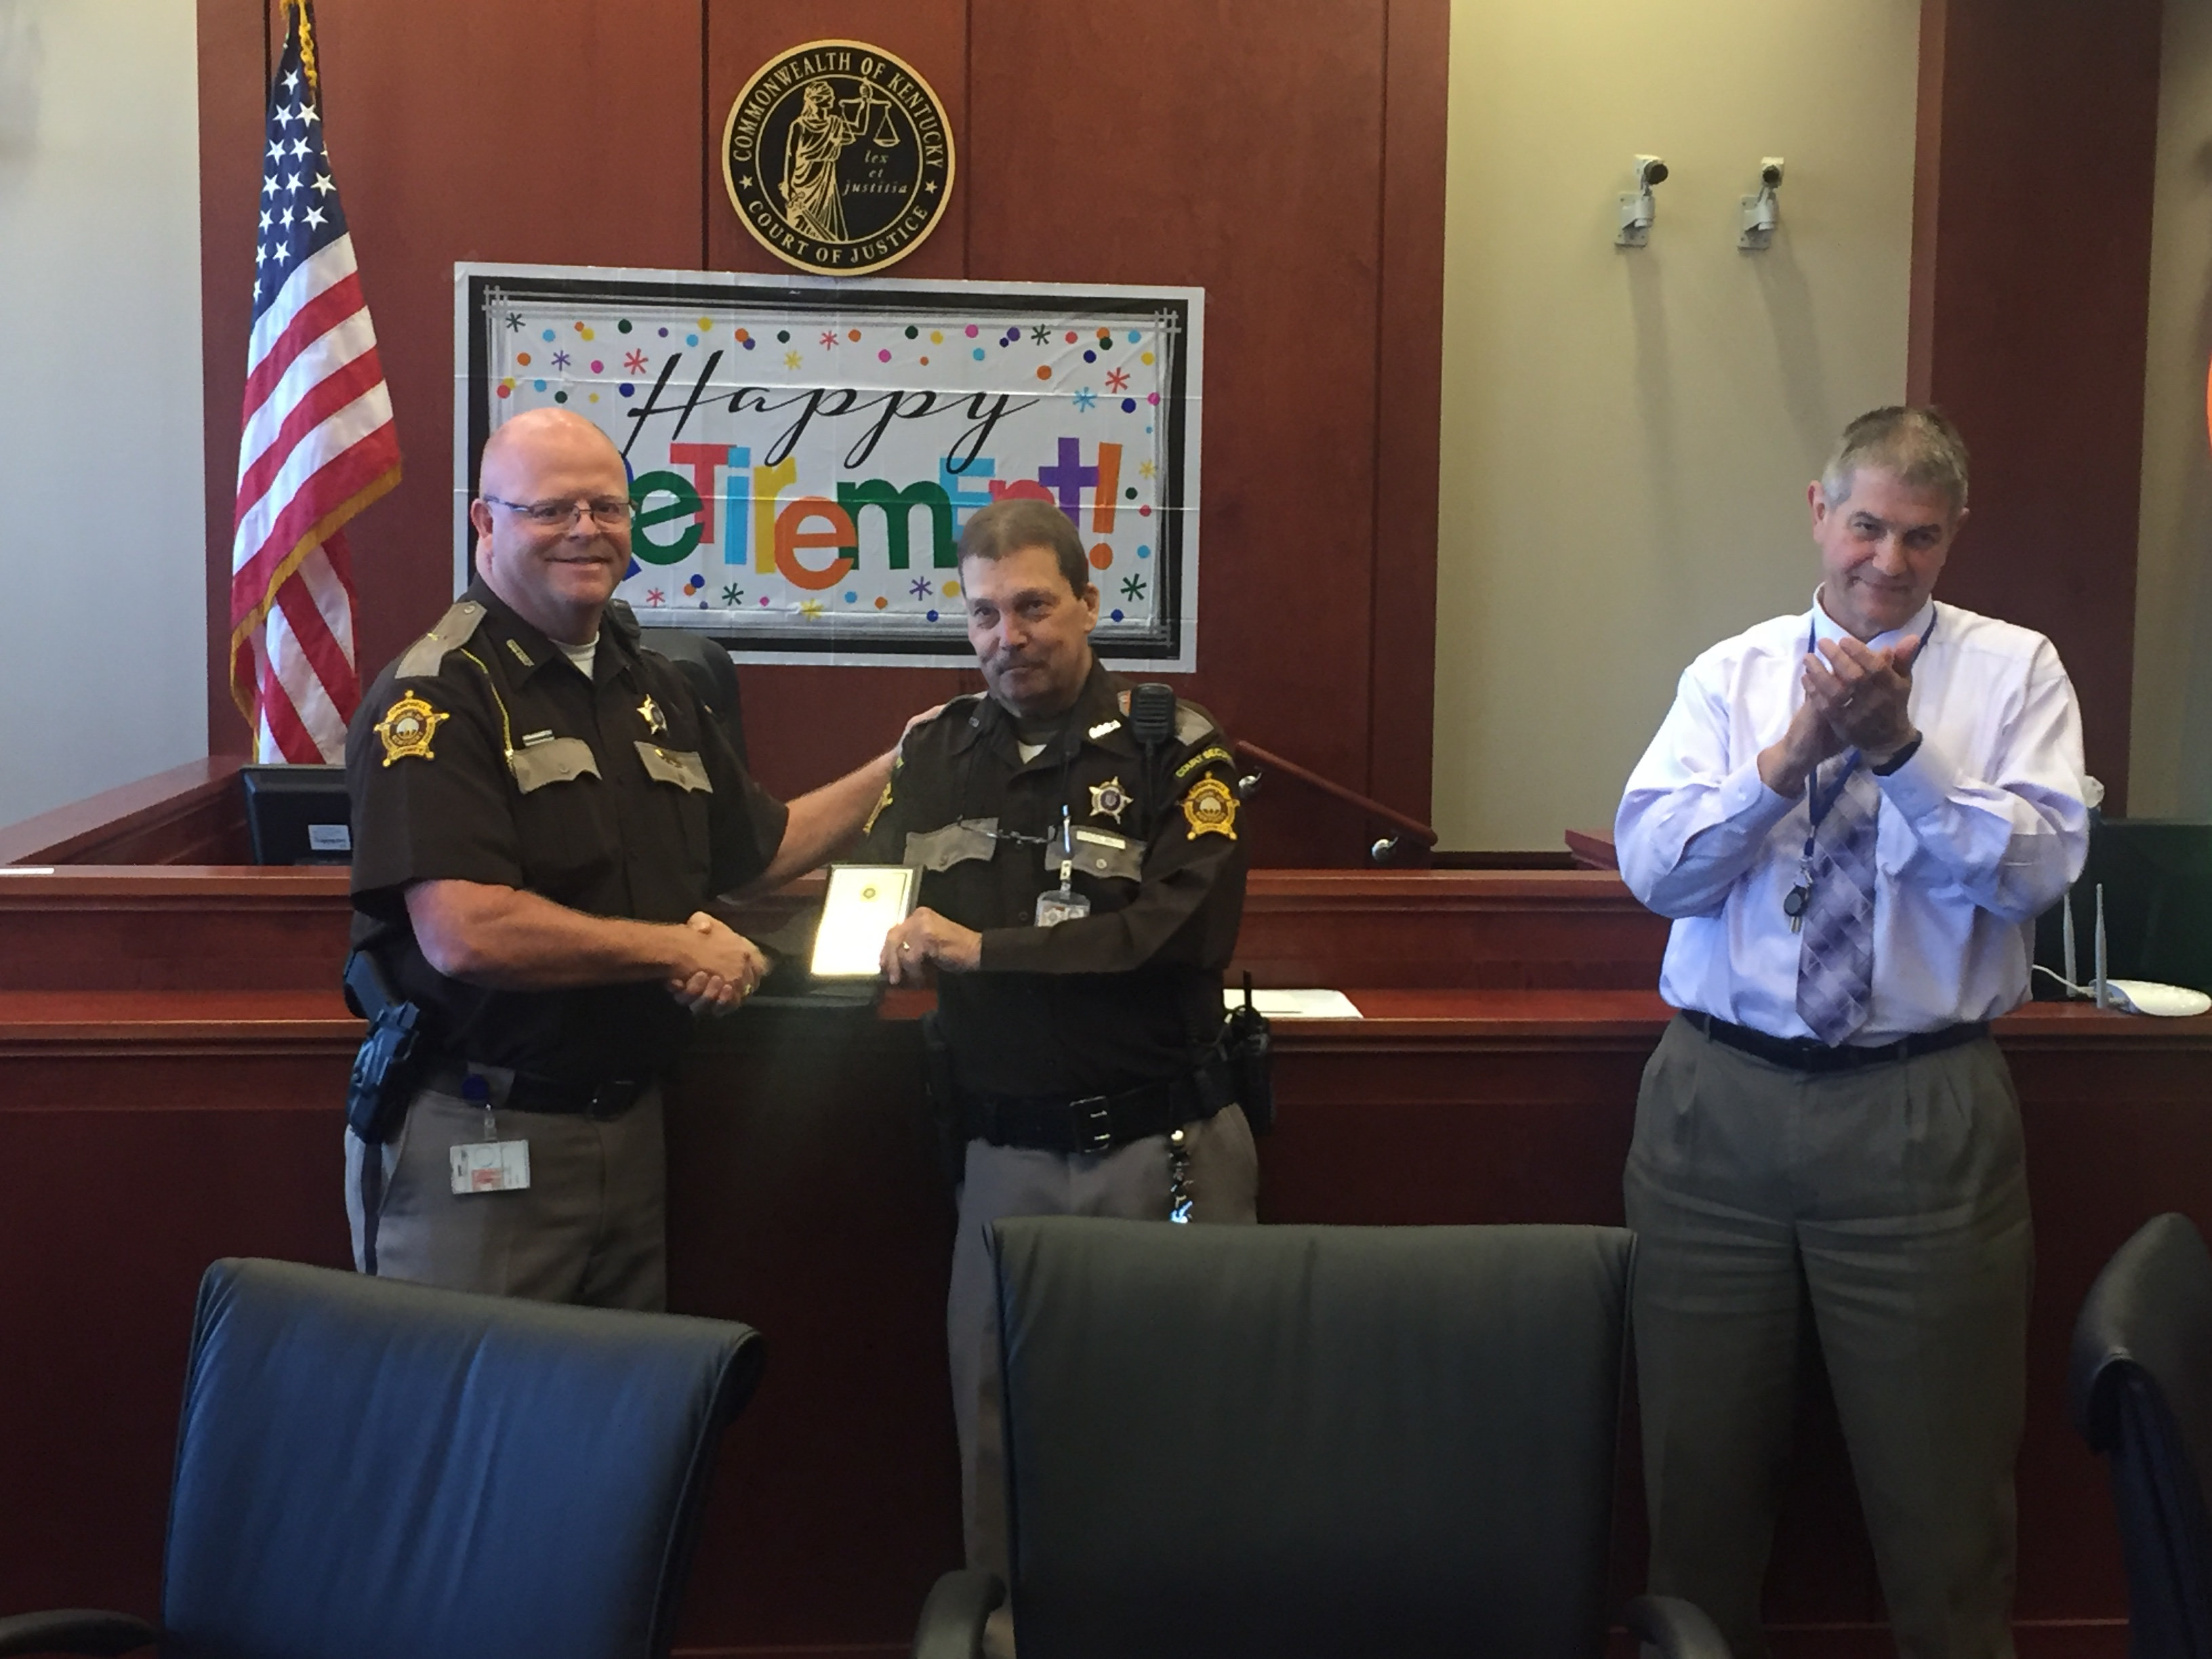 A SALUTE TO RETIRING DEPUTY DAVE CAMM